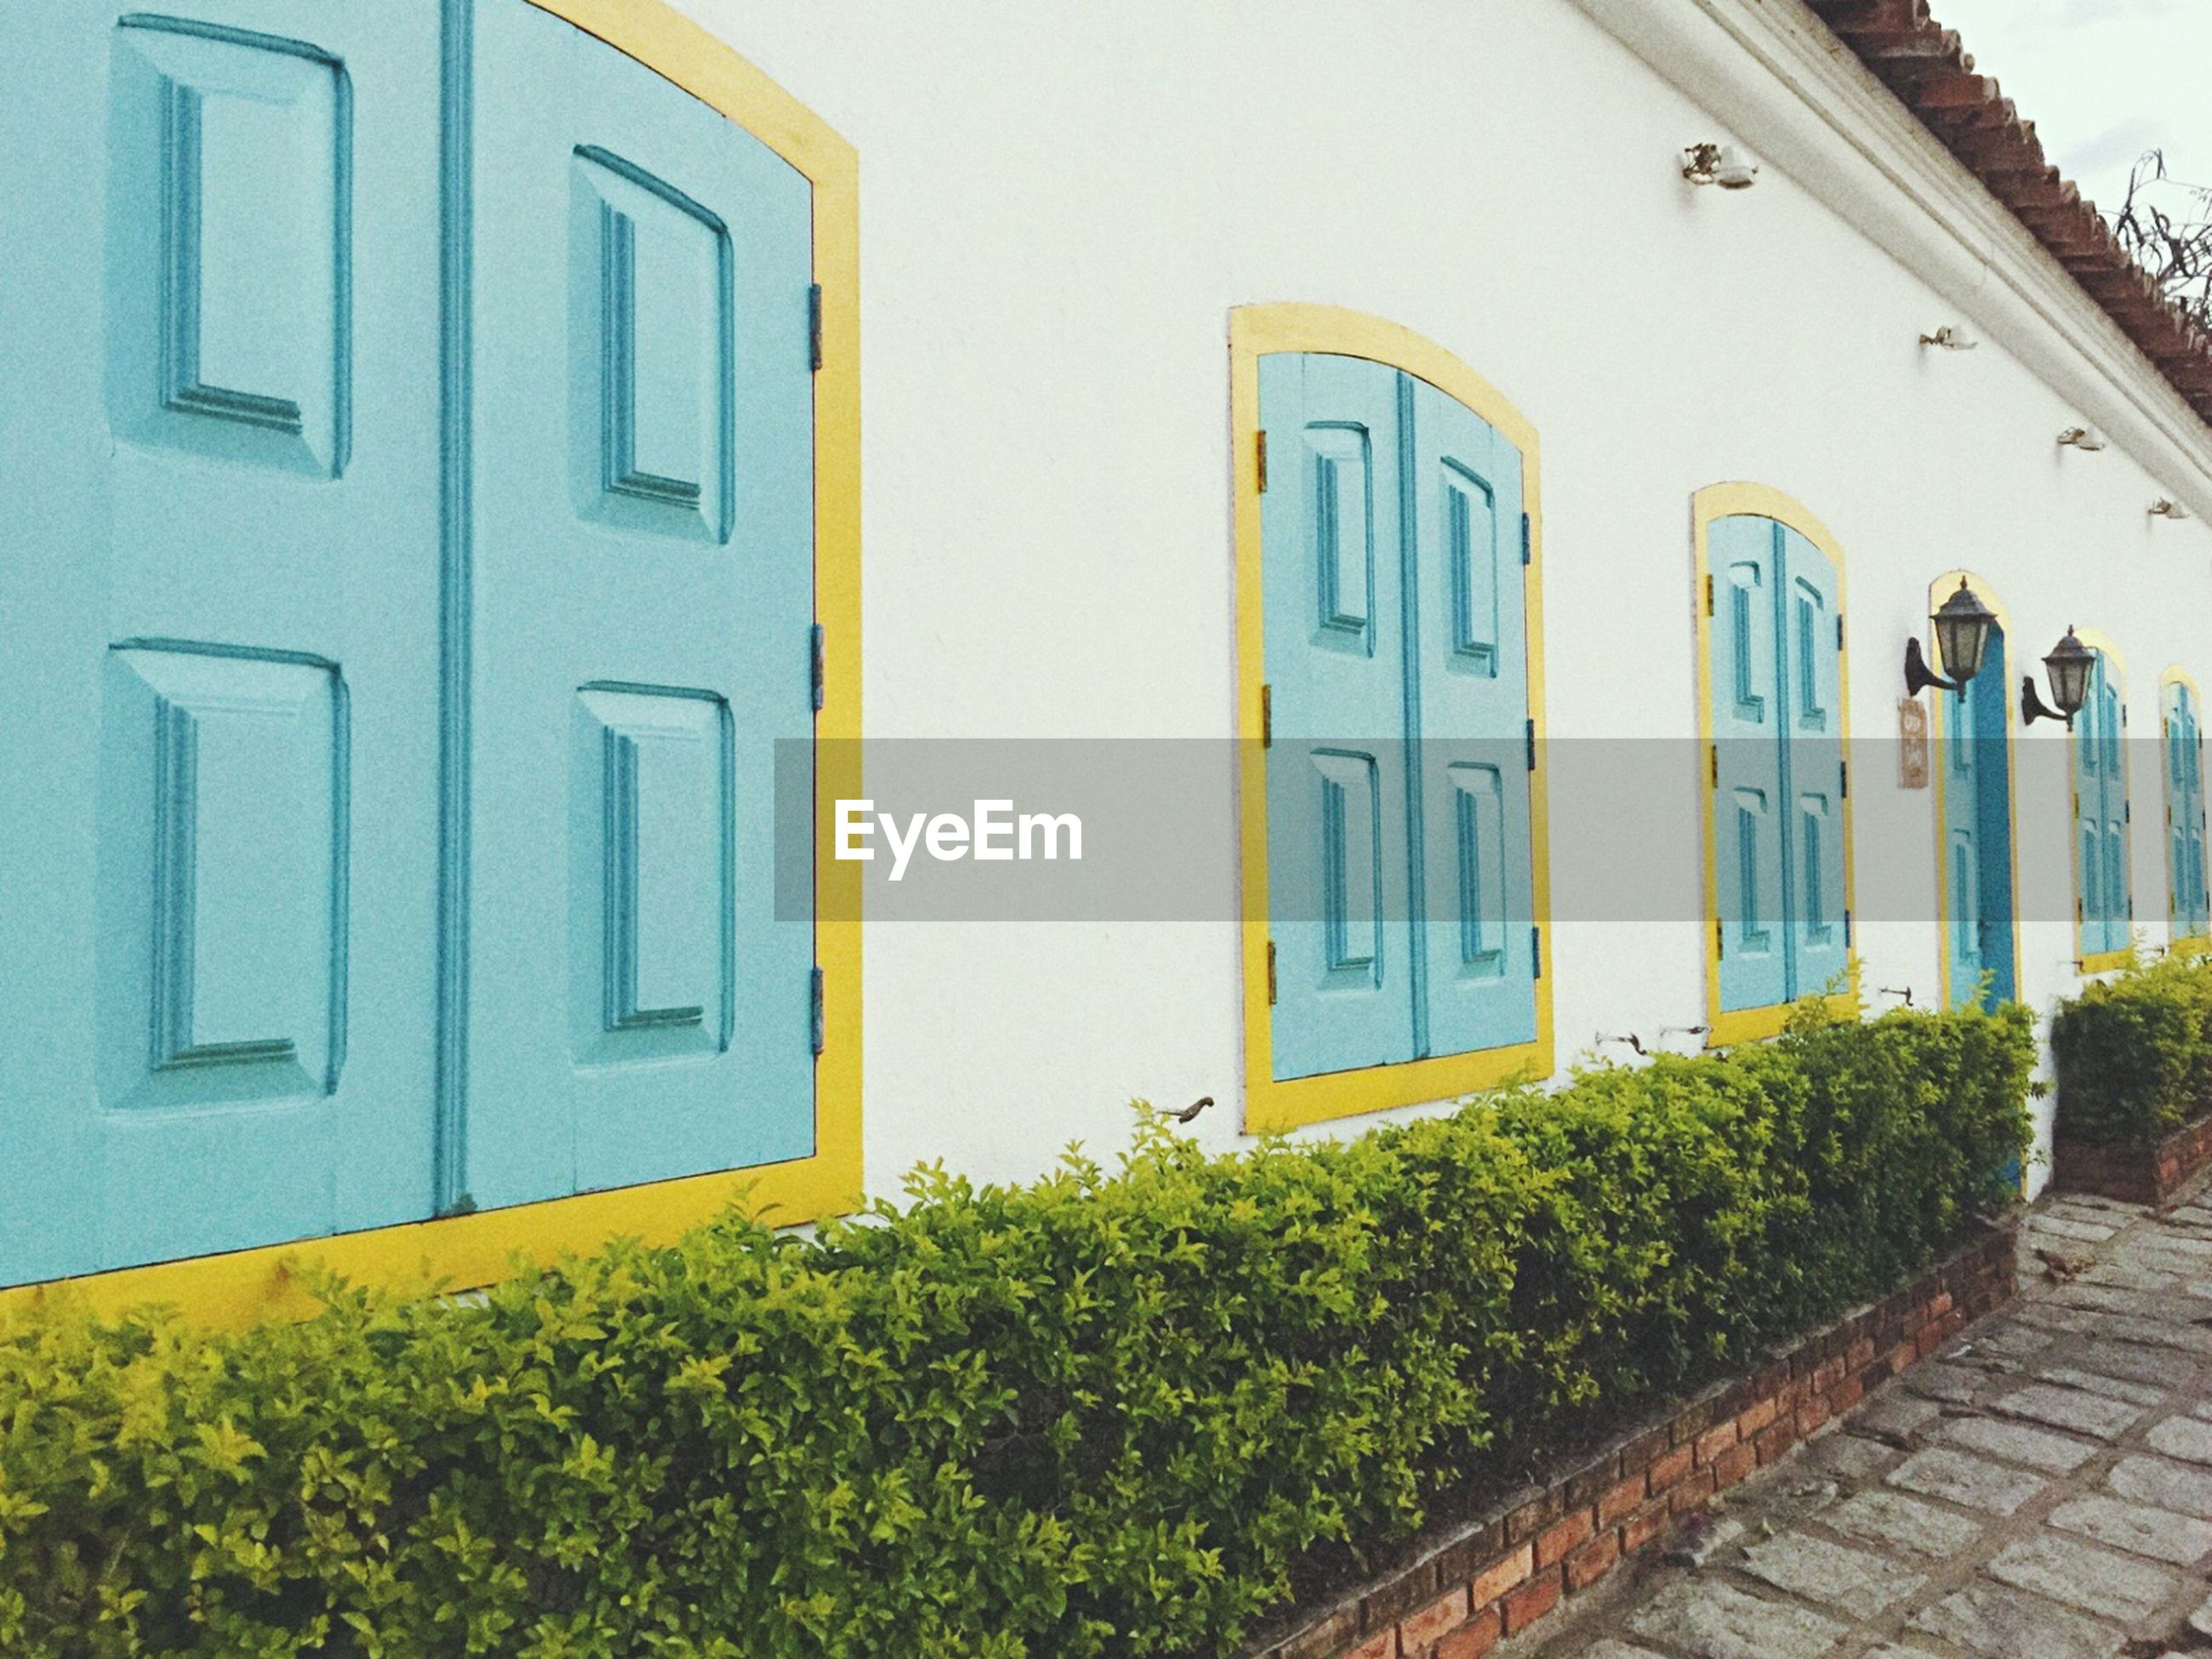 building exterior, architecture, built structure, window, house, residential structure, residential building, door, plant, yellow, building, growth, facade, closed, outdoors, day, green color, no people, potted plant, balcony